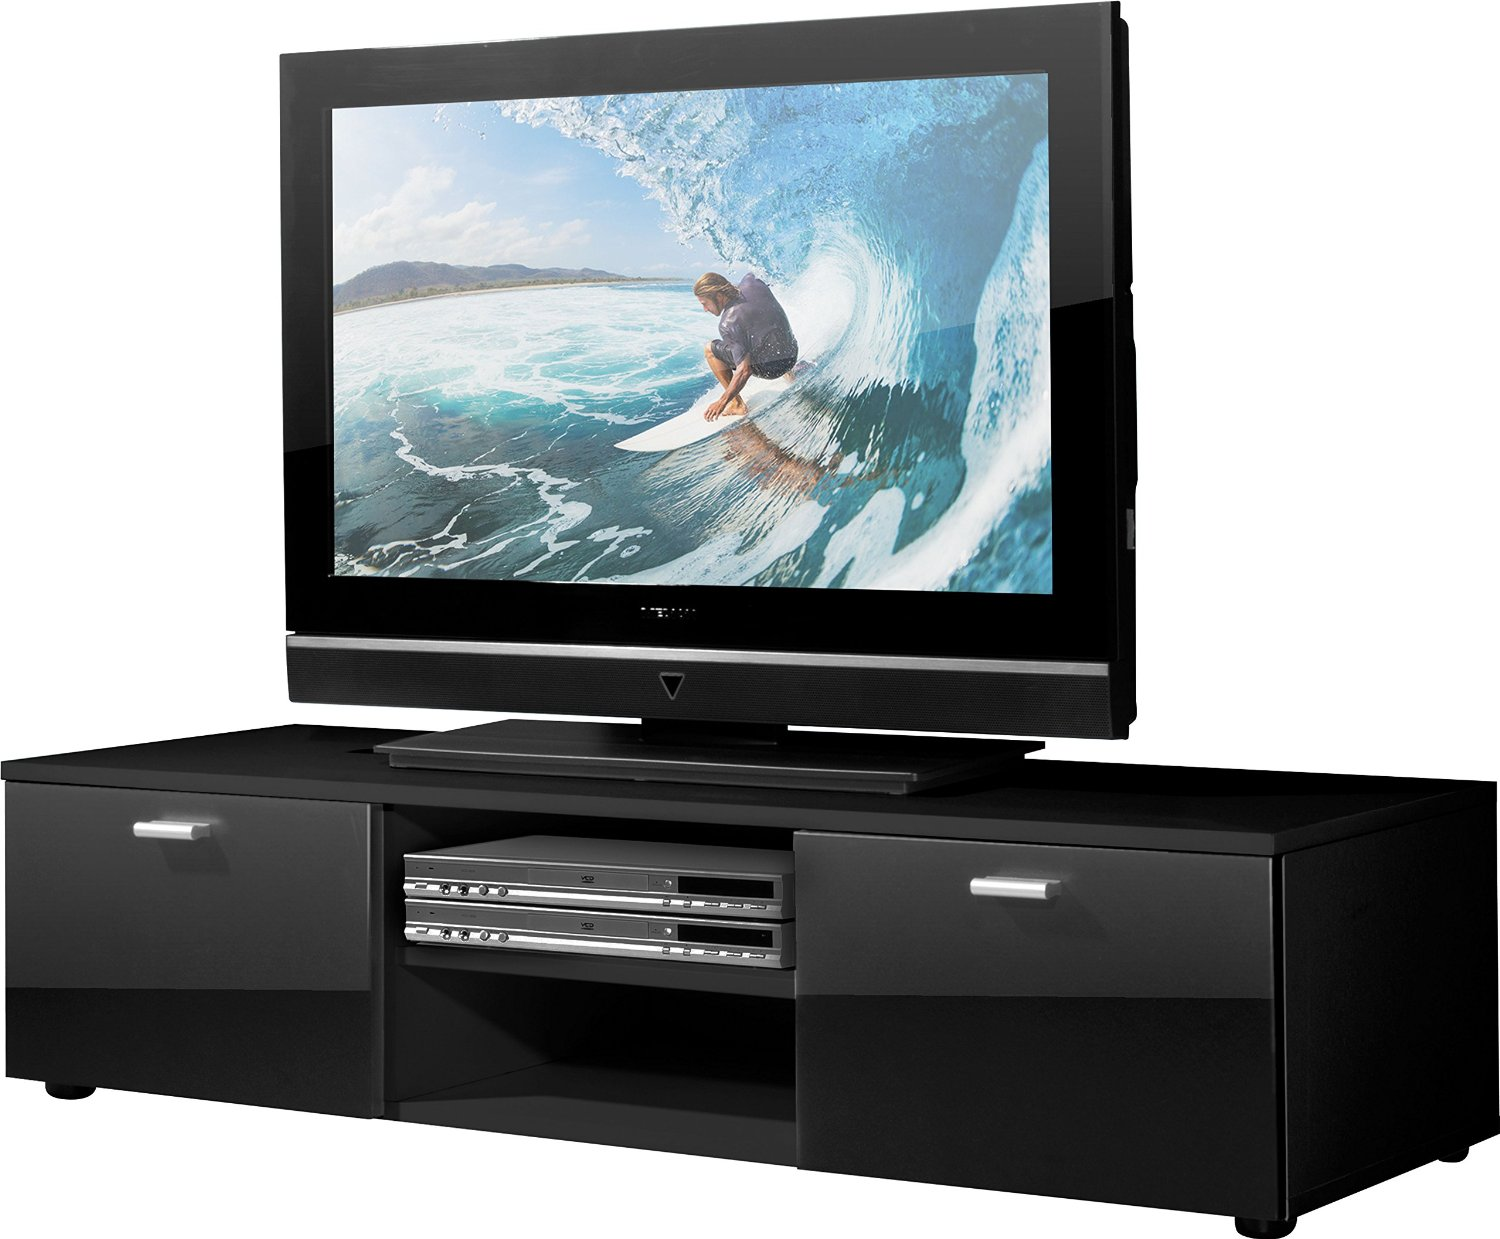 eck tv bank fabulous fabulous fabulous see others picture of schne tv bank grau liatorp tv bank. Black Bedroom Furniture Sets. Home Design Ideas